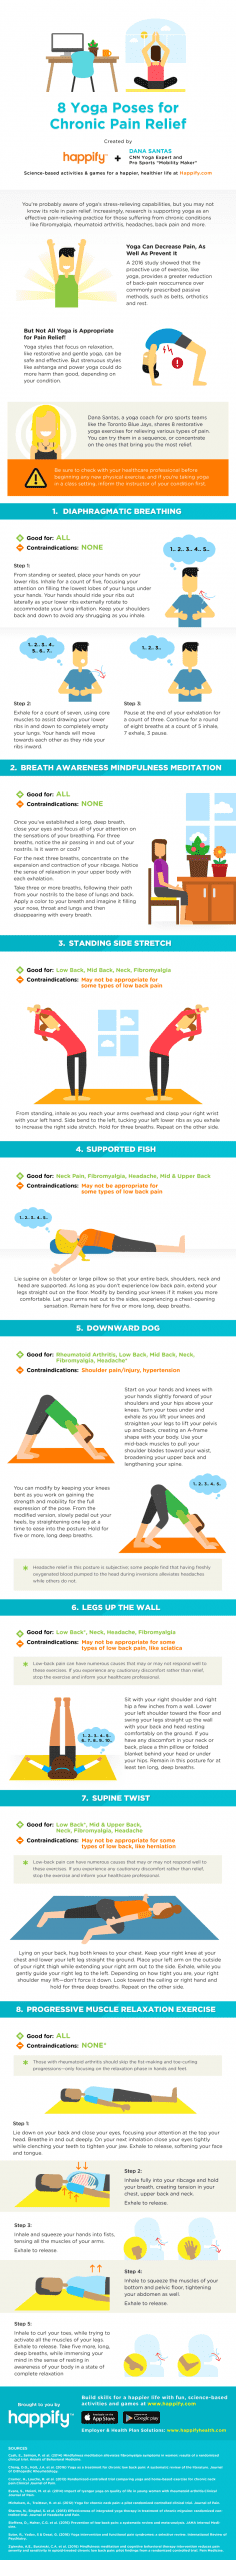 yoga-chronicpain-Happify